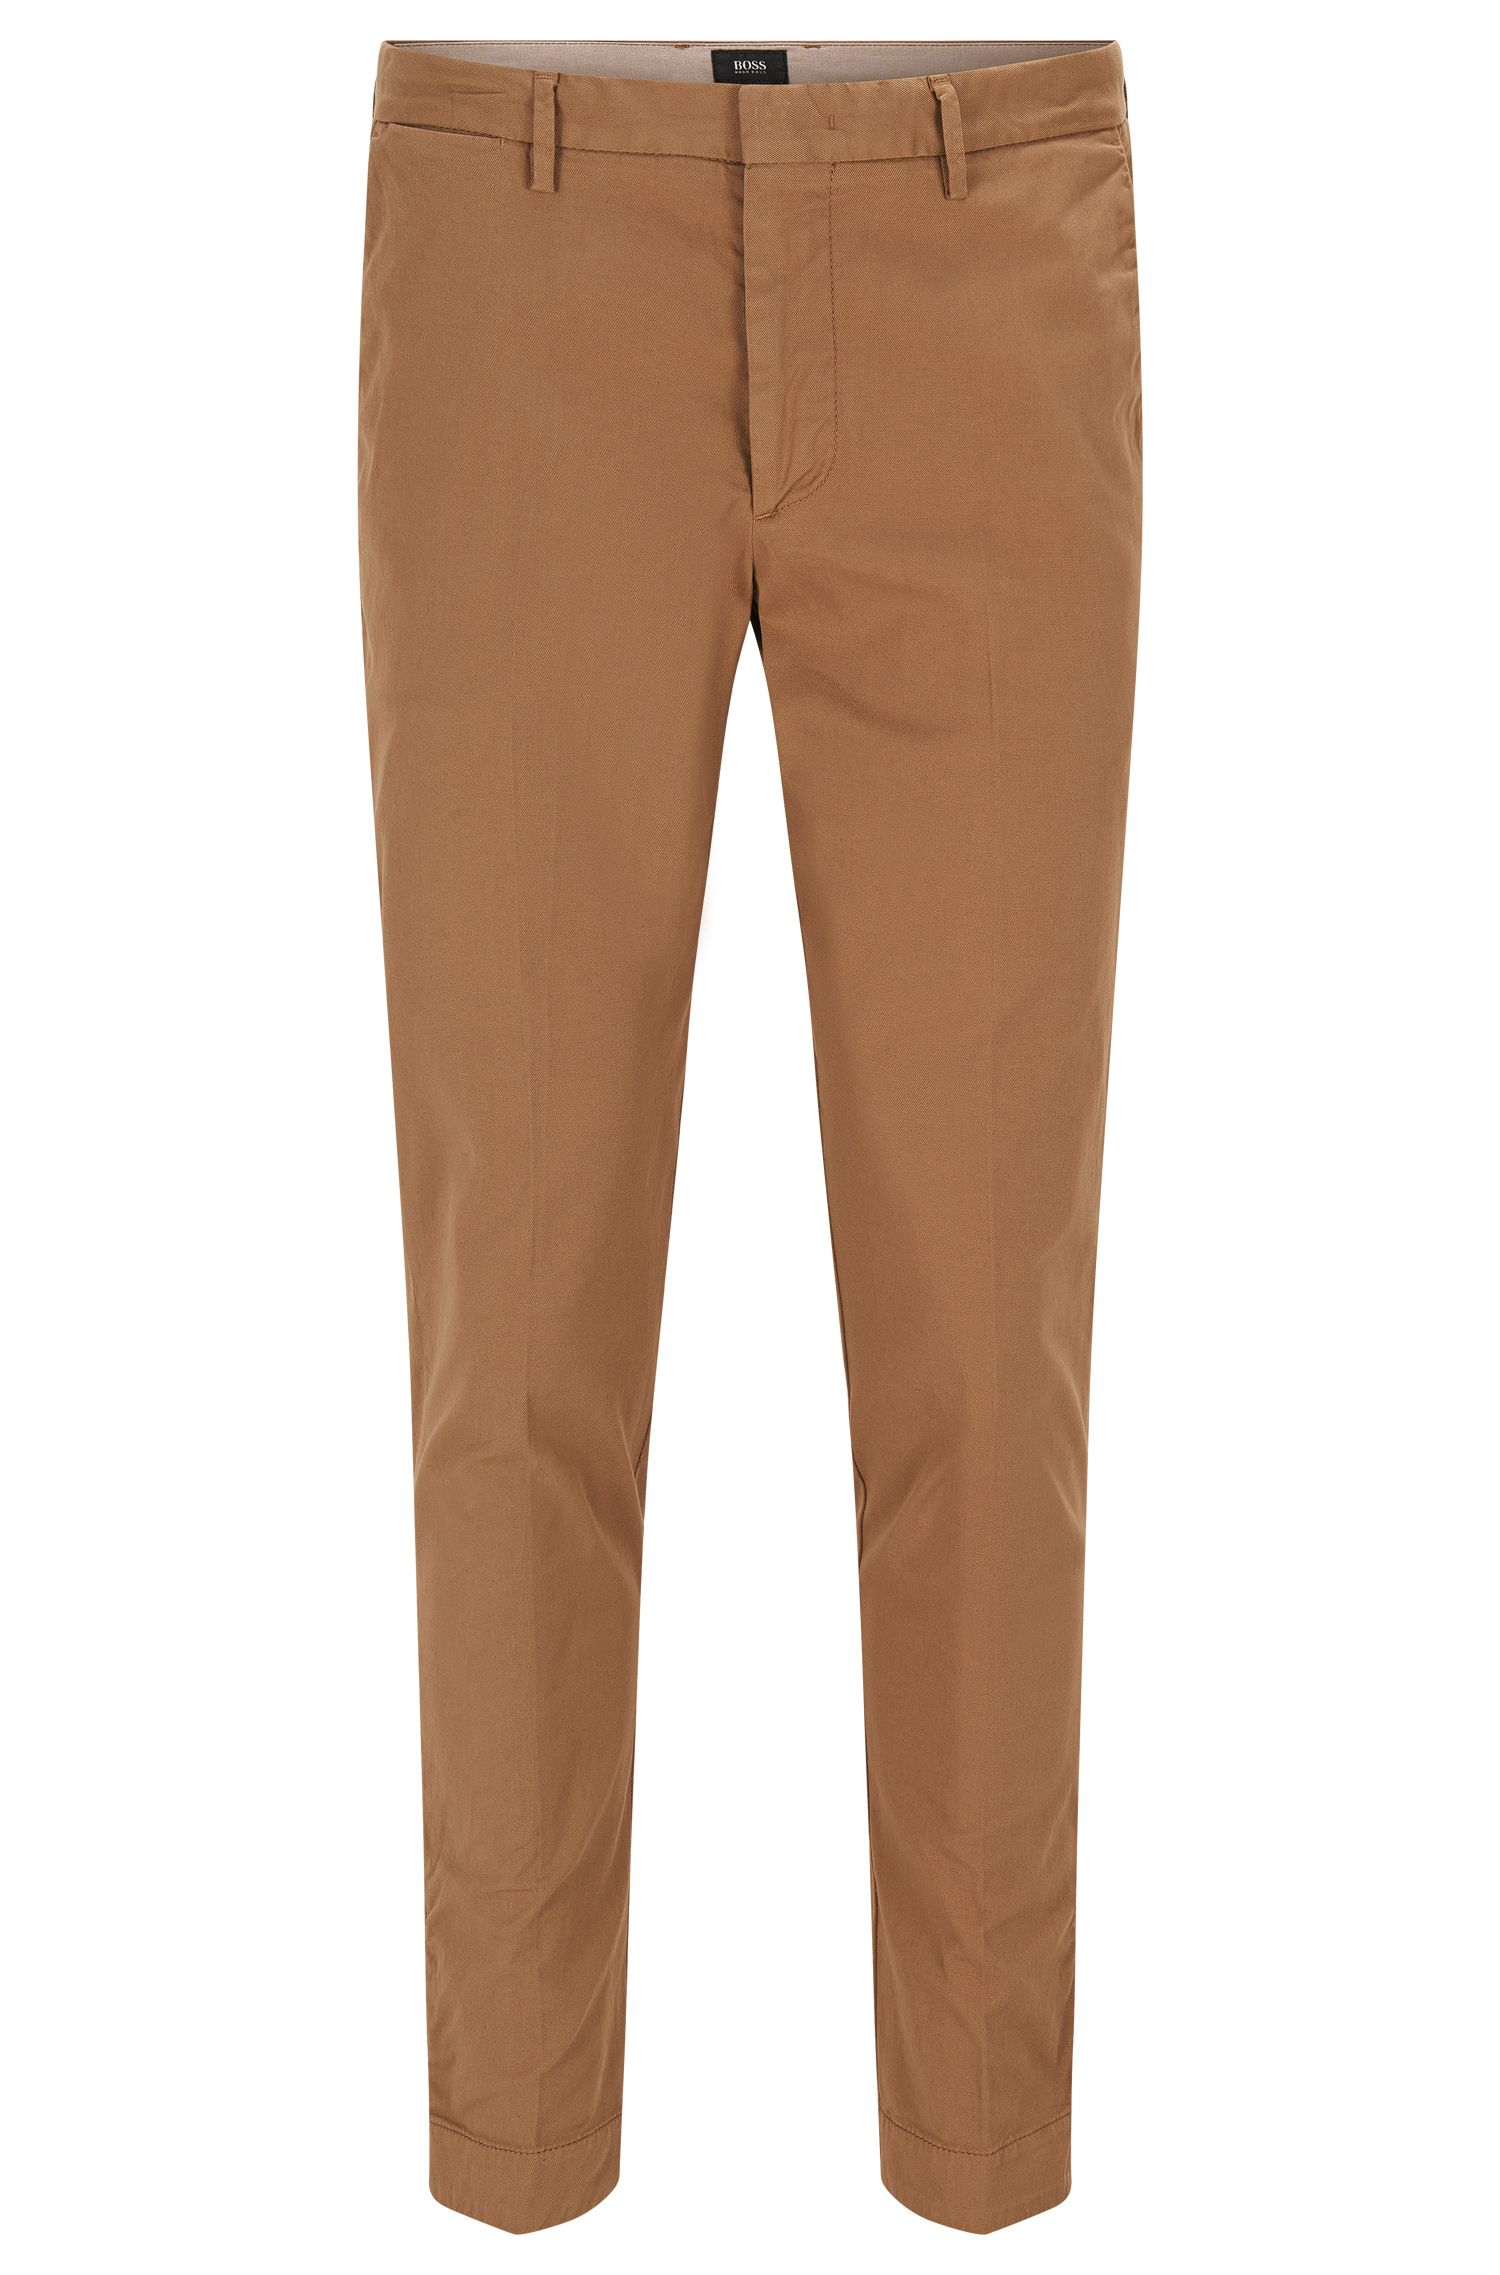 Gabardine Stretch Cotton Chino Pants, Slim Fit | Kaito Pat D